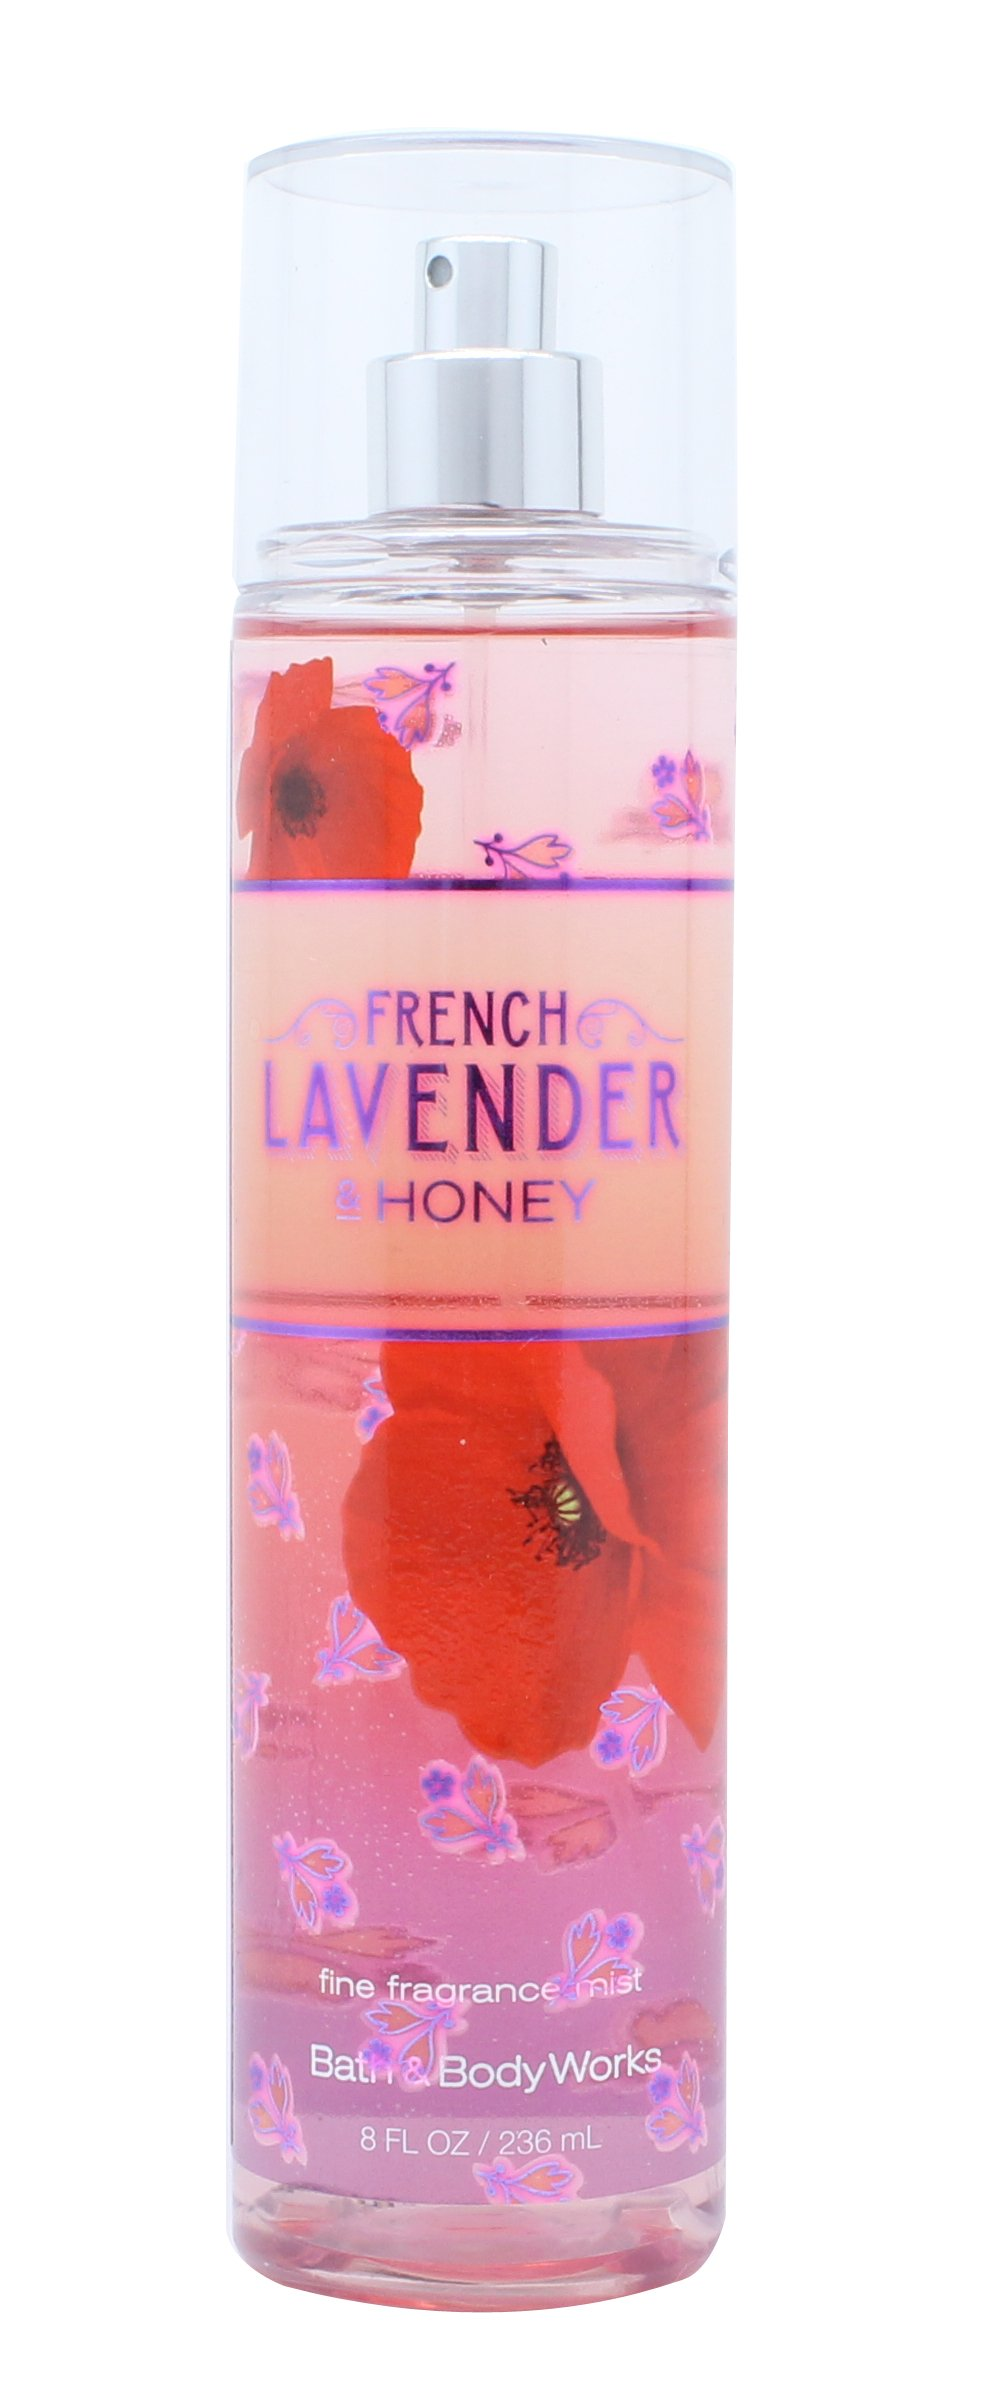 Bath & Body Works French Lavender & Honey Fine Fragrance Mist 8 oz/236 mL